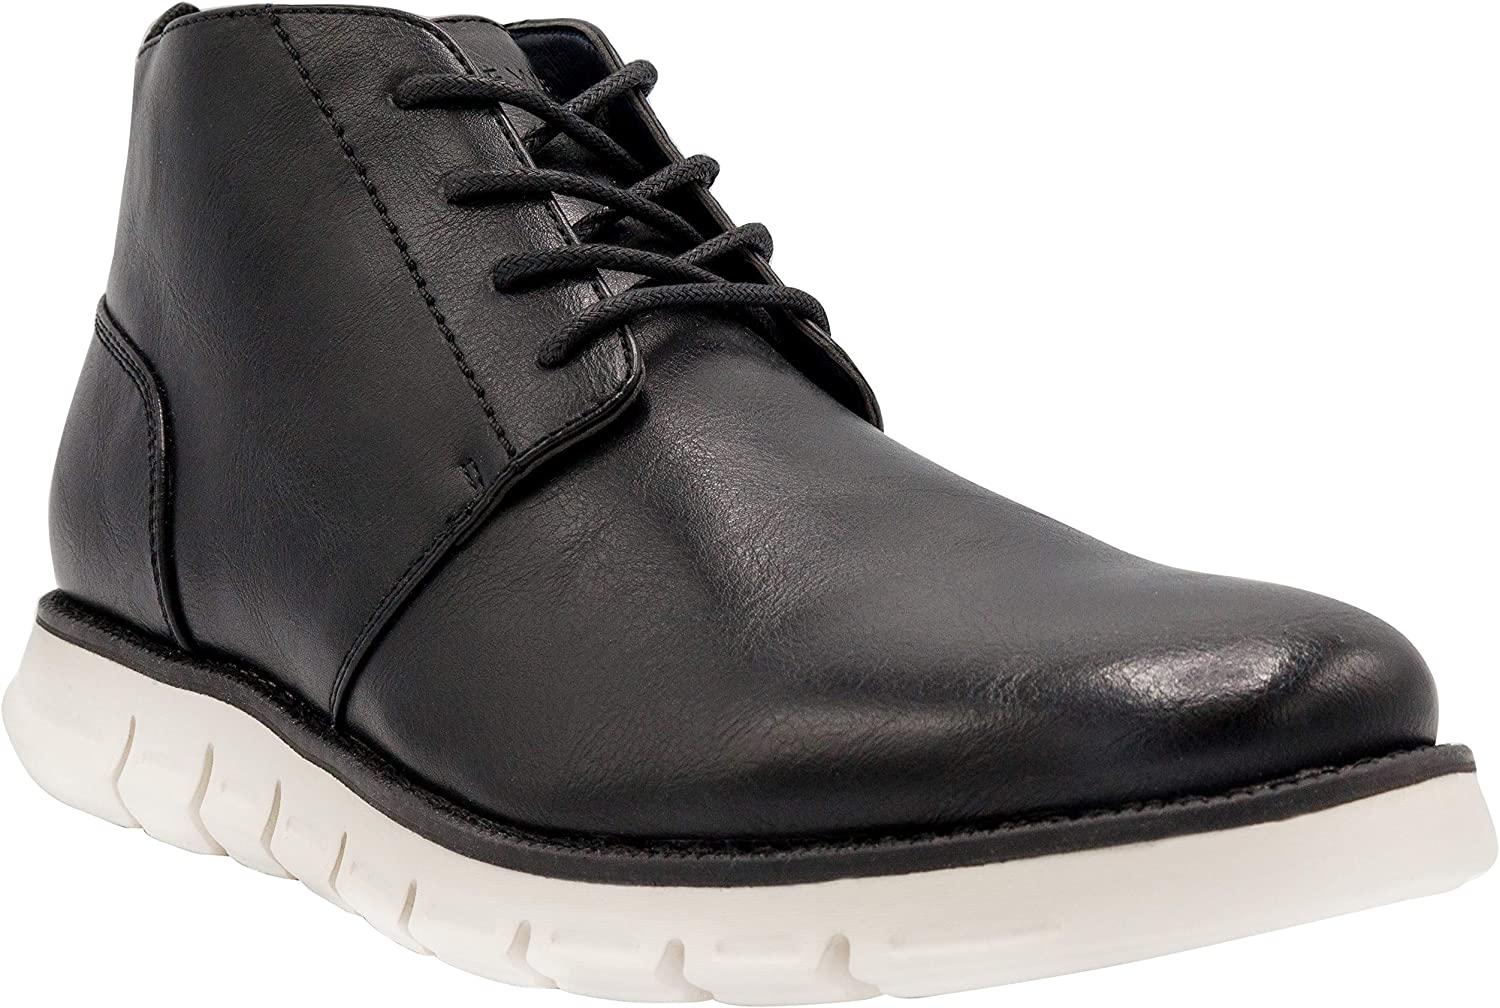 NINE WEST Mens Chukka Boots I Casual Dress Boots for Men I Lightweight Lace Up Mens Ankle Boots I Fashion Top Boots with Deep Grooves in Outsole That Mimics The Natural Motion of The Foot I Hardey